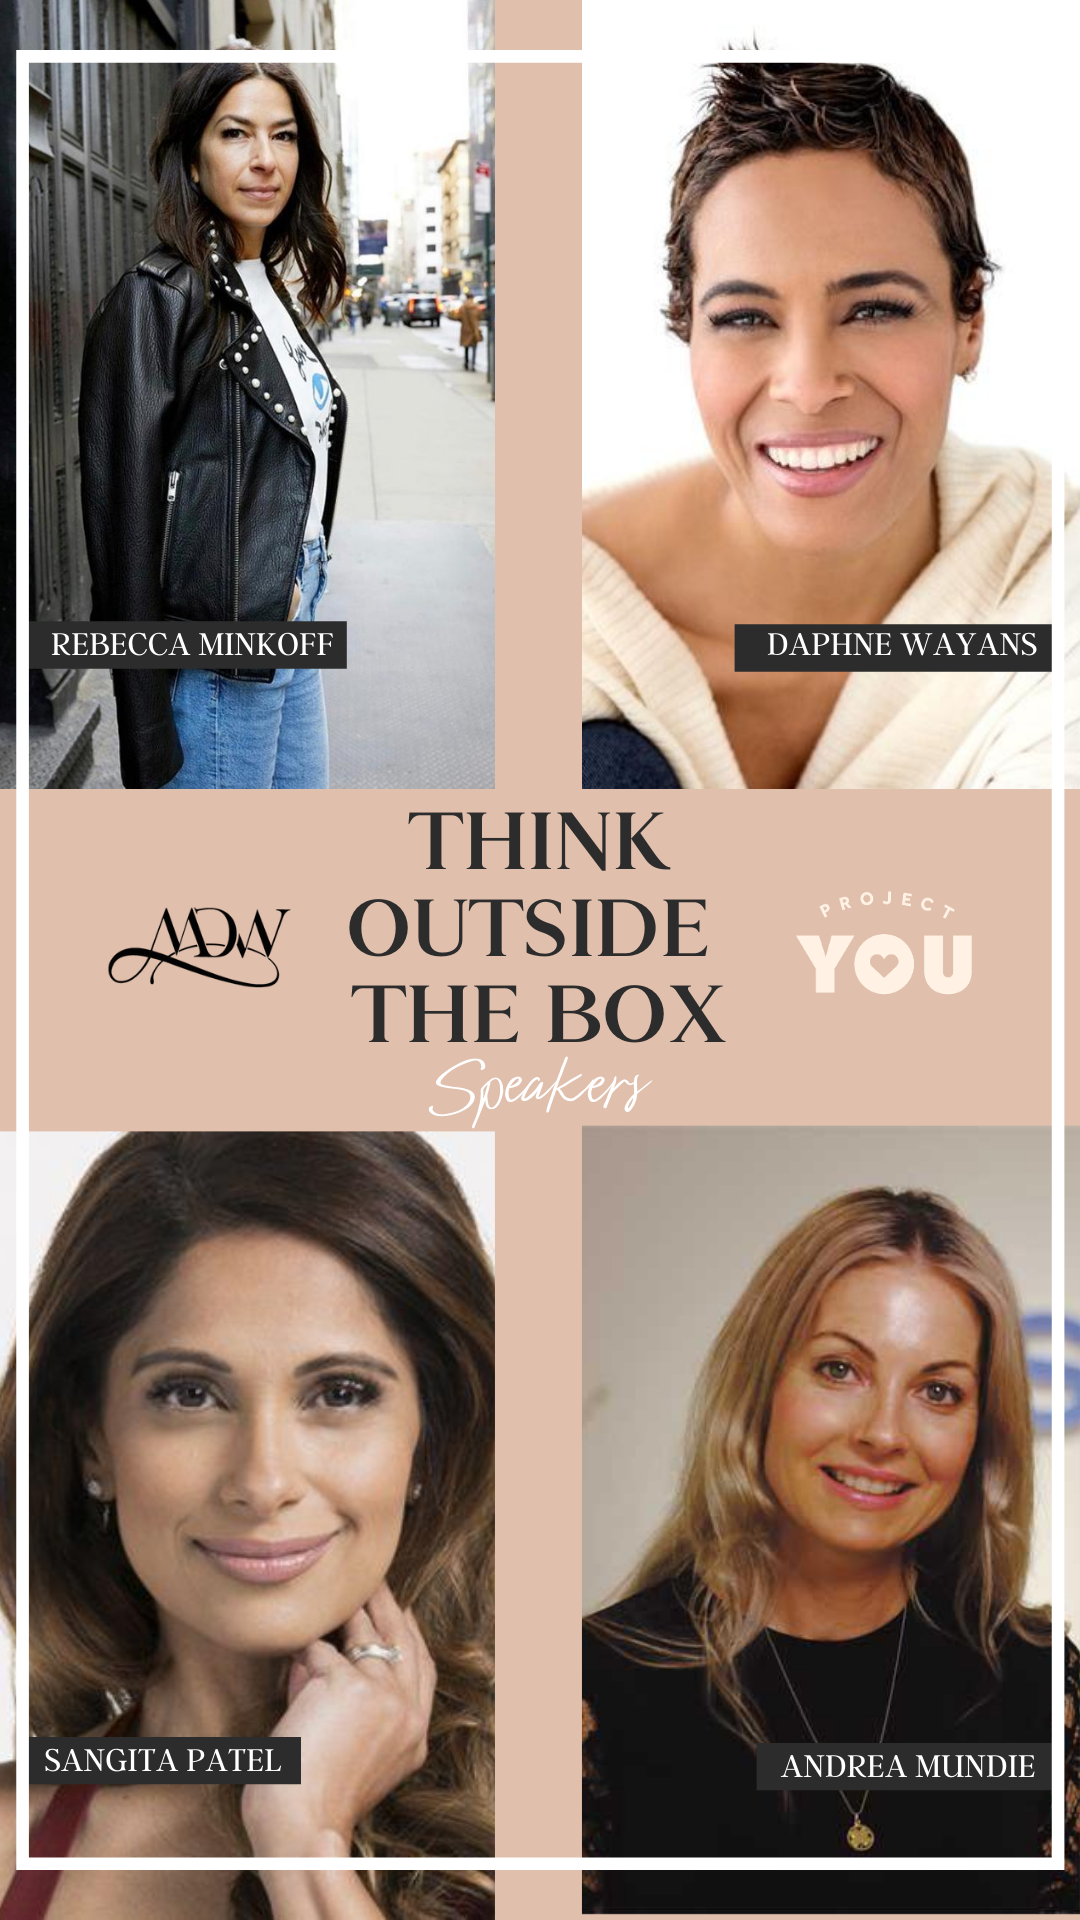 Think Outside The Box: Short-Term Dreams and Long-Term Goals